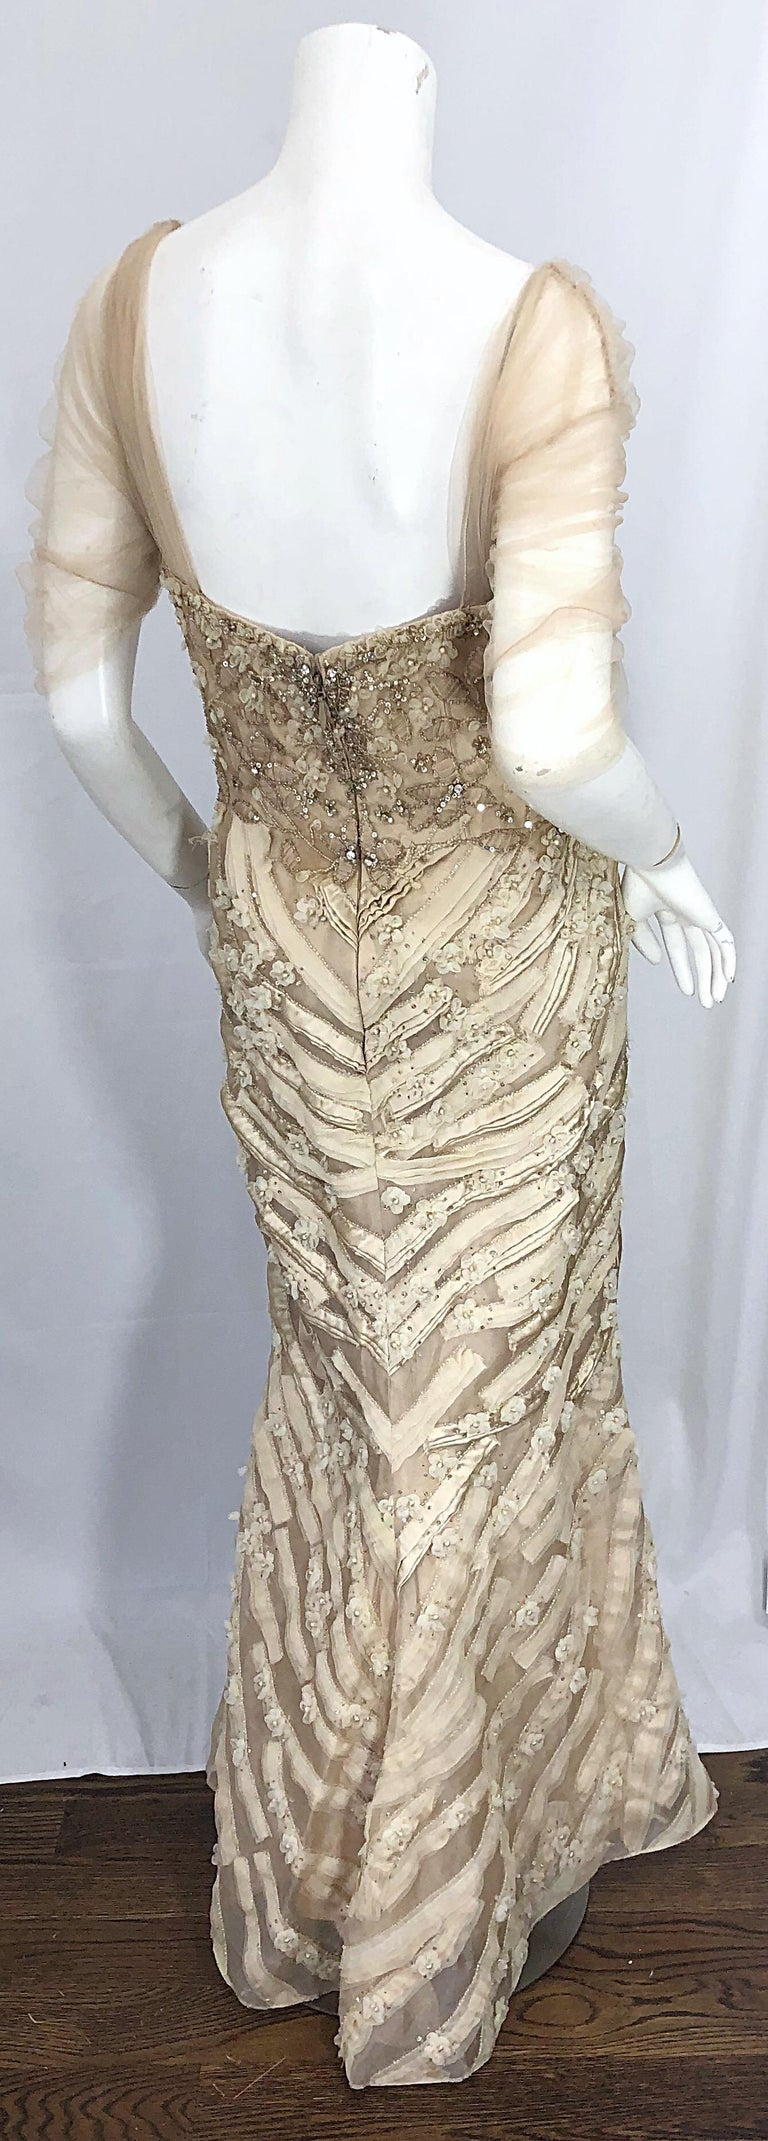 Monique Lhuillier Couture Size 10 / 12 Beige Rhinestone Beaded $12,000 Silk Gown For Sale 2